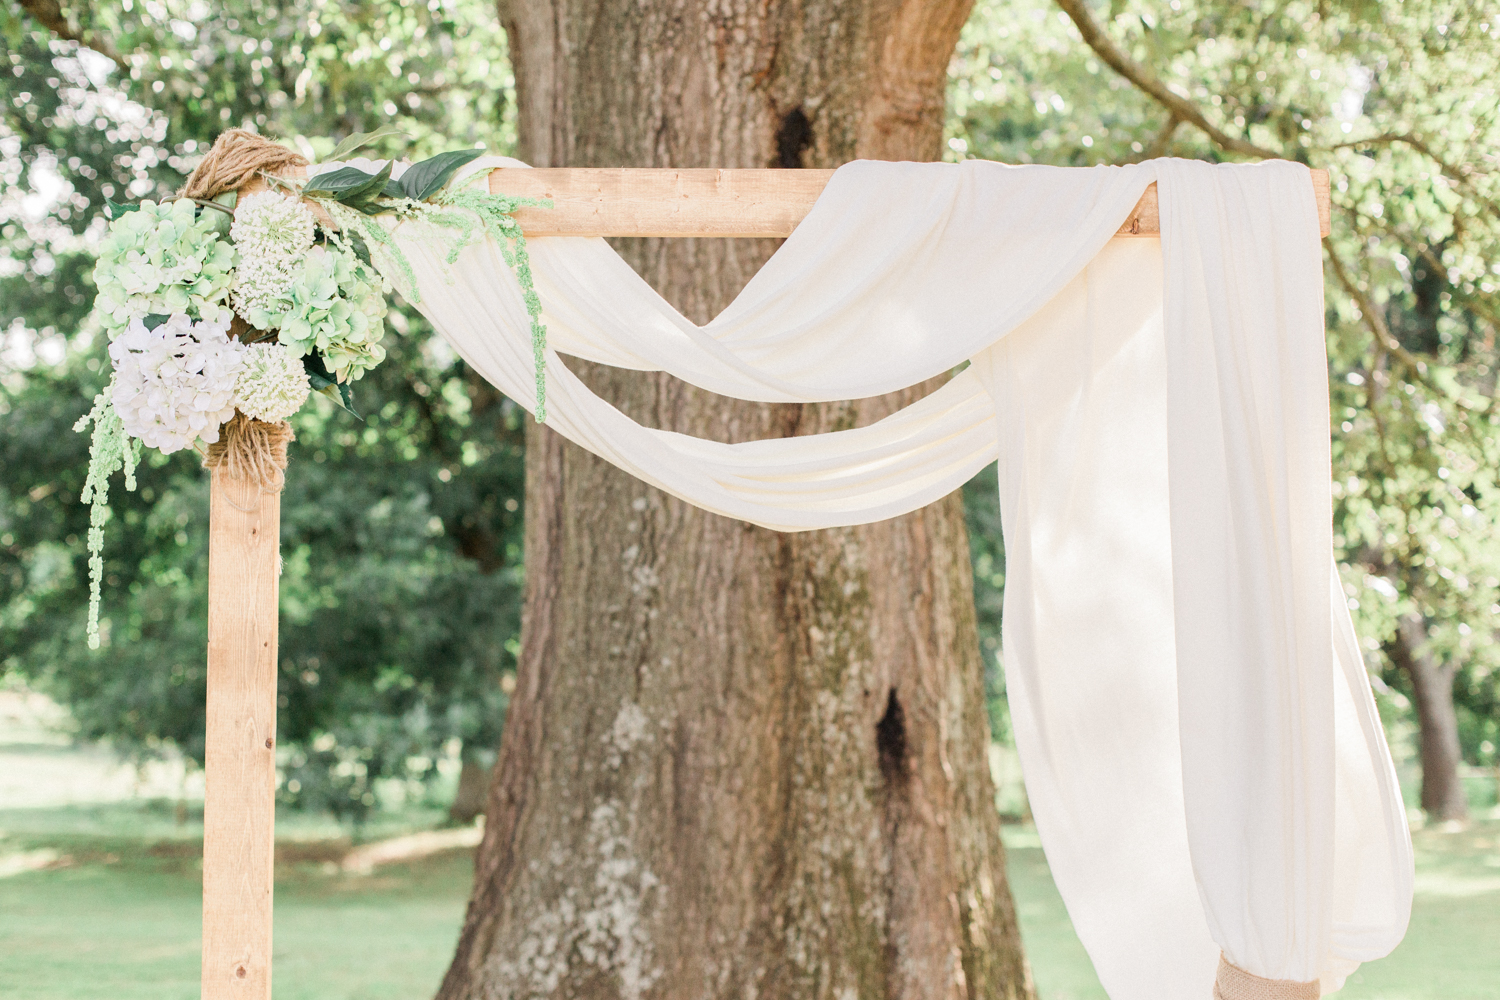 Wedding ceremony arbor with hydrangeas and draped fabric. Summer, outdoor, barn wedding in north Georgia at Hays McDonald Farm in Jefferson, Georgia. Photo by Kesia Marie Photography- Fine Art Wedding Photographer.